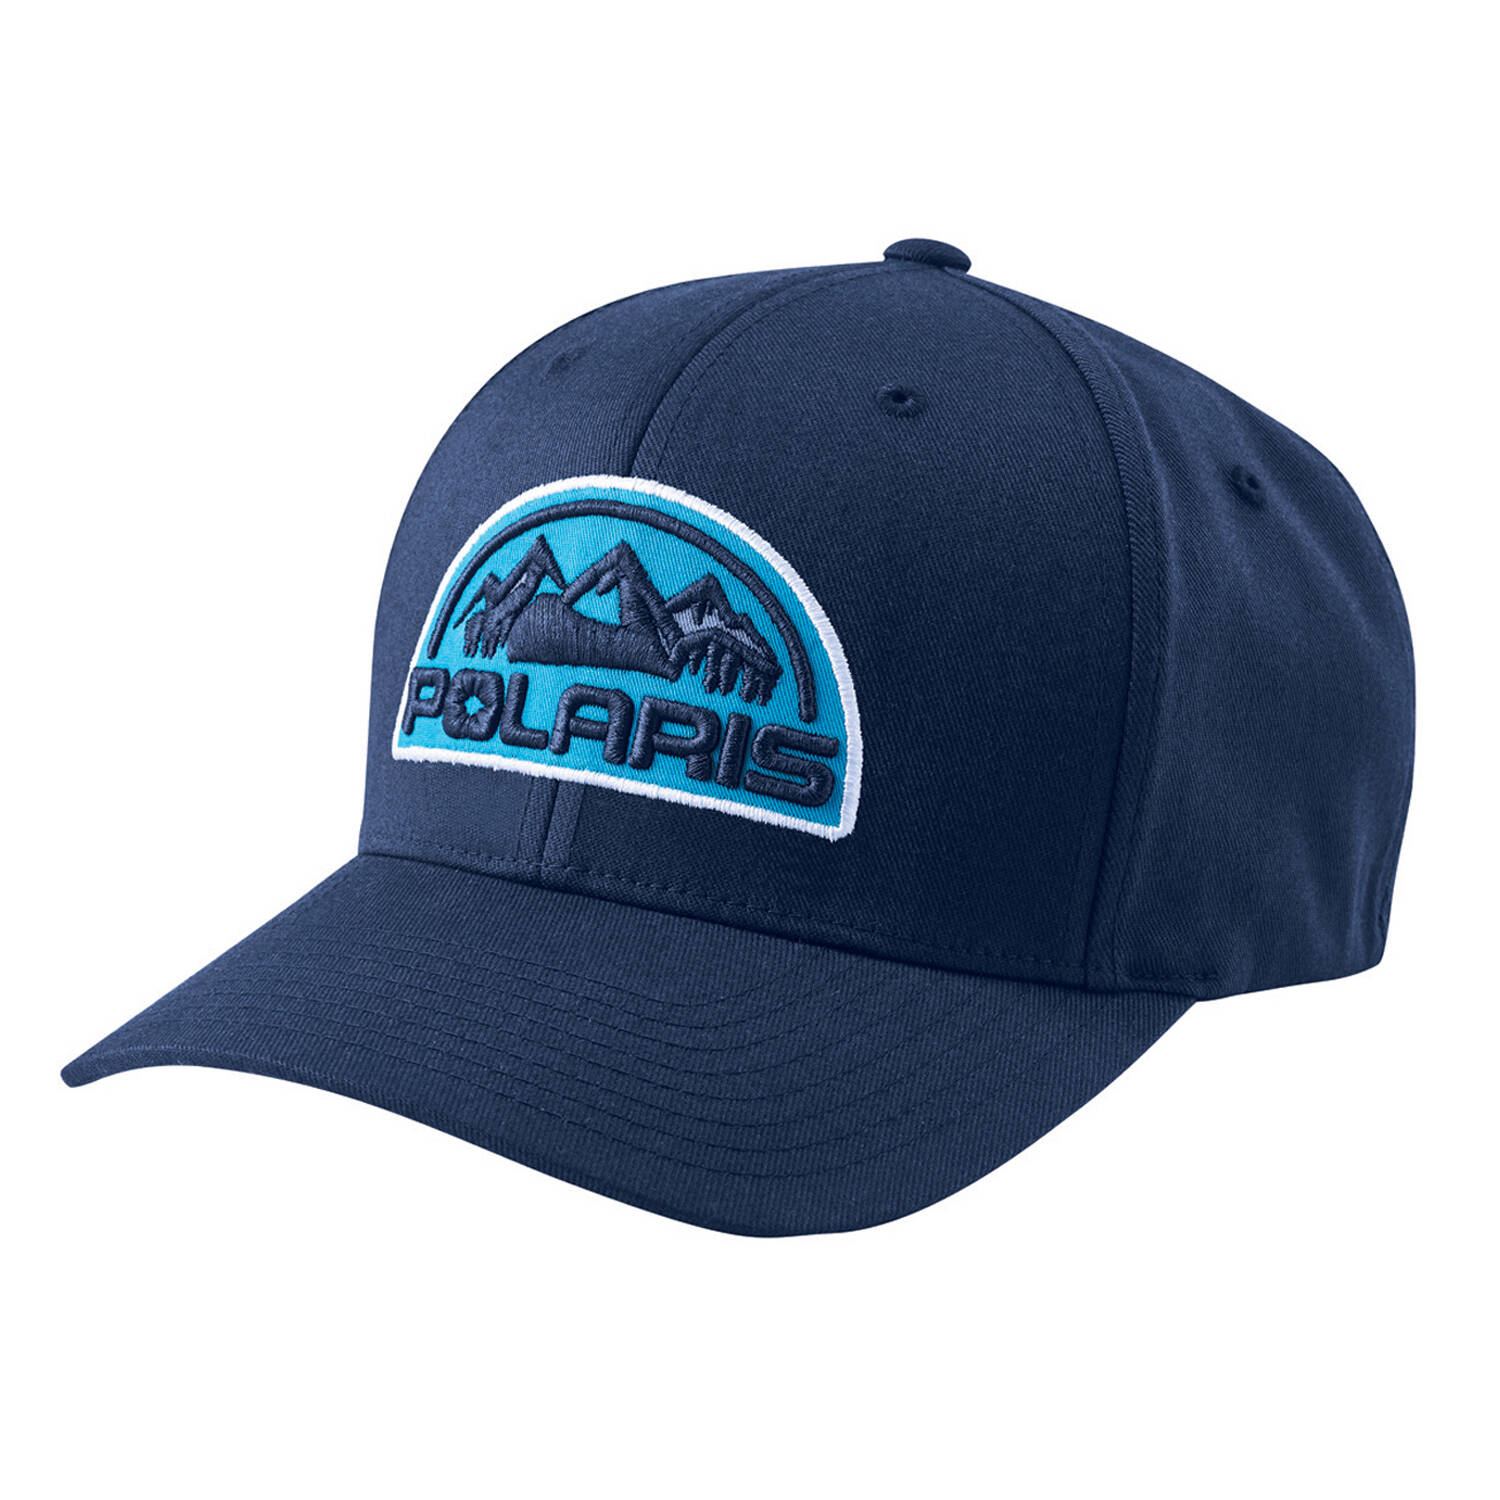 Unisex (L/XL) Flexfit Hat with Mountain Scape Polaris® Logo Patch, Navy